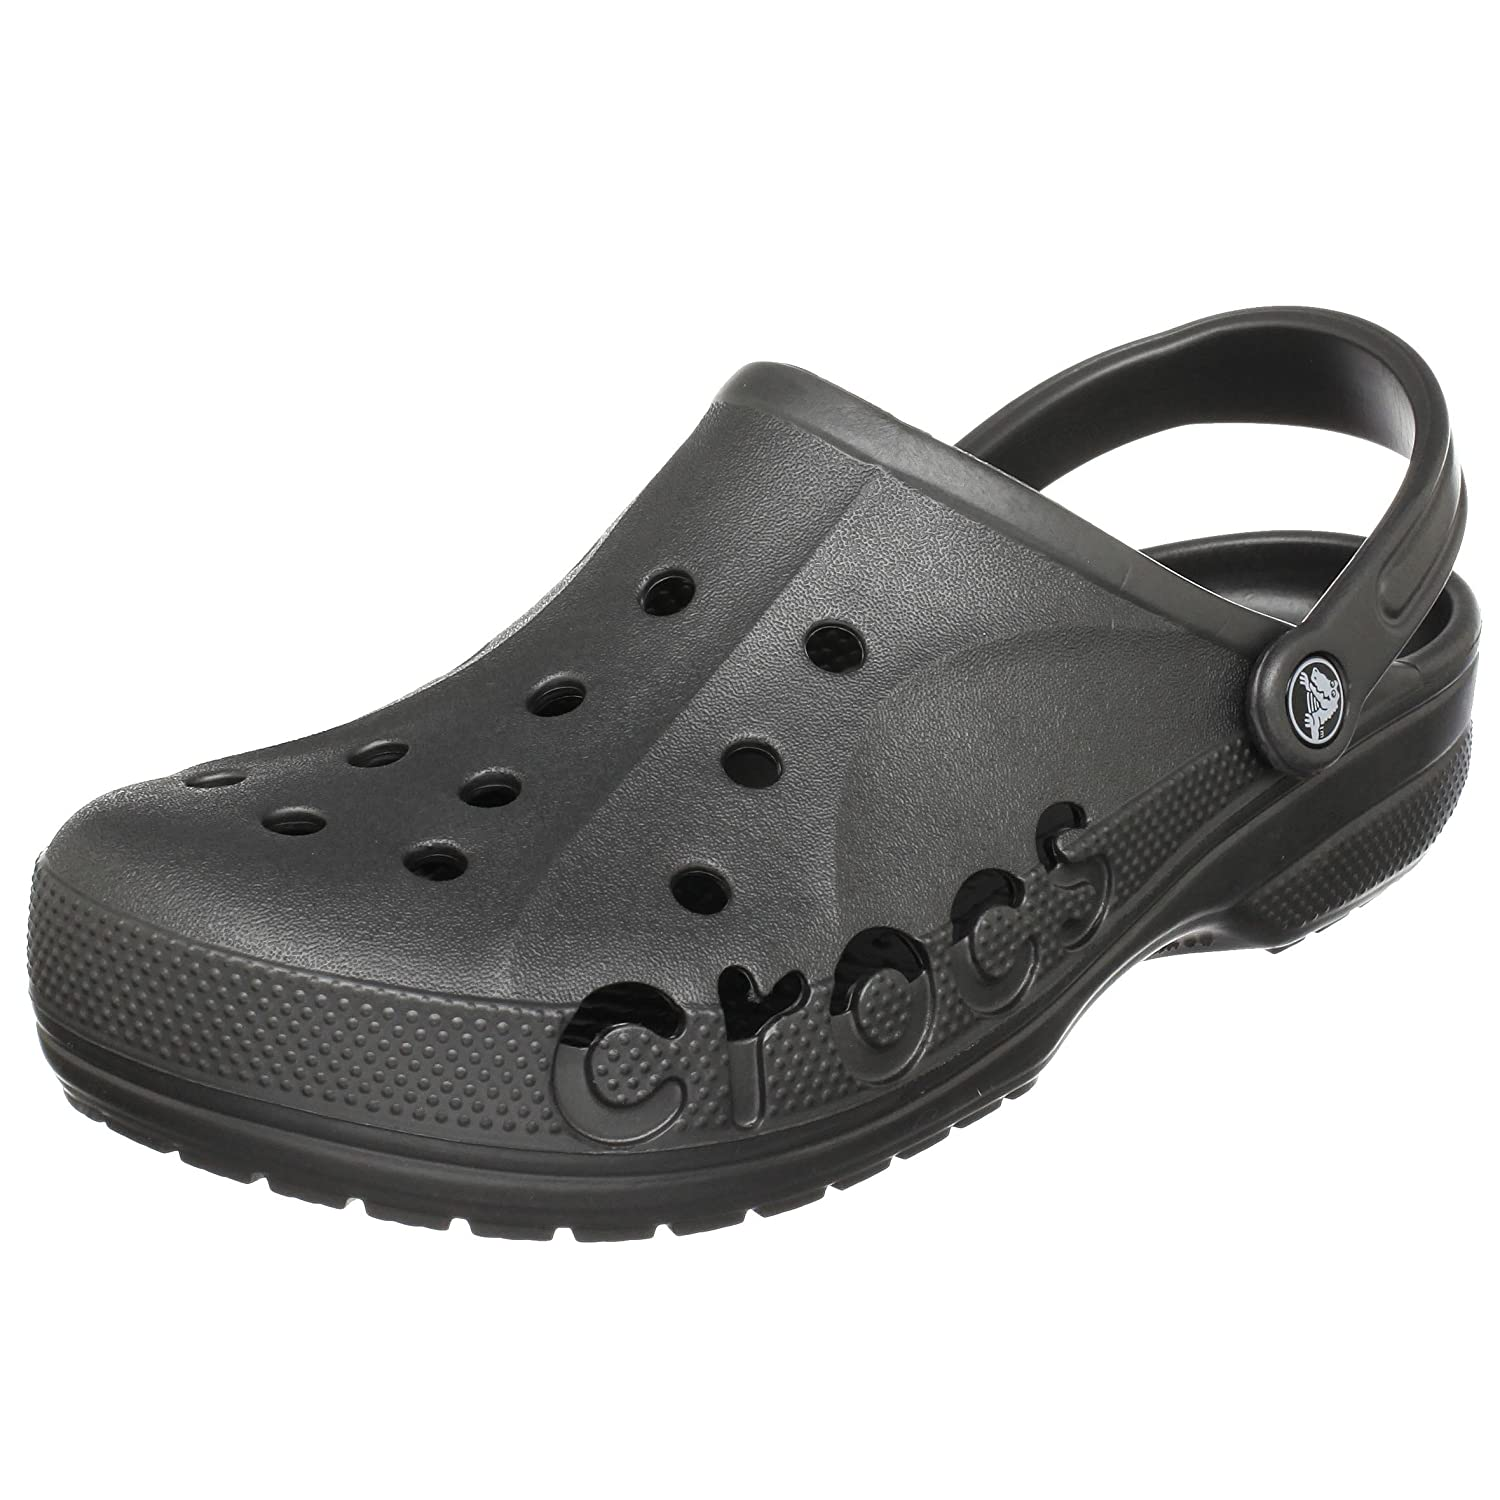 fded7cf8cd3a crocs Unisex Baya Black Rubber Clogs and Mules  Buy Online at Low Prices in  India - Amazon.in